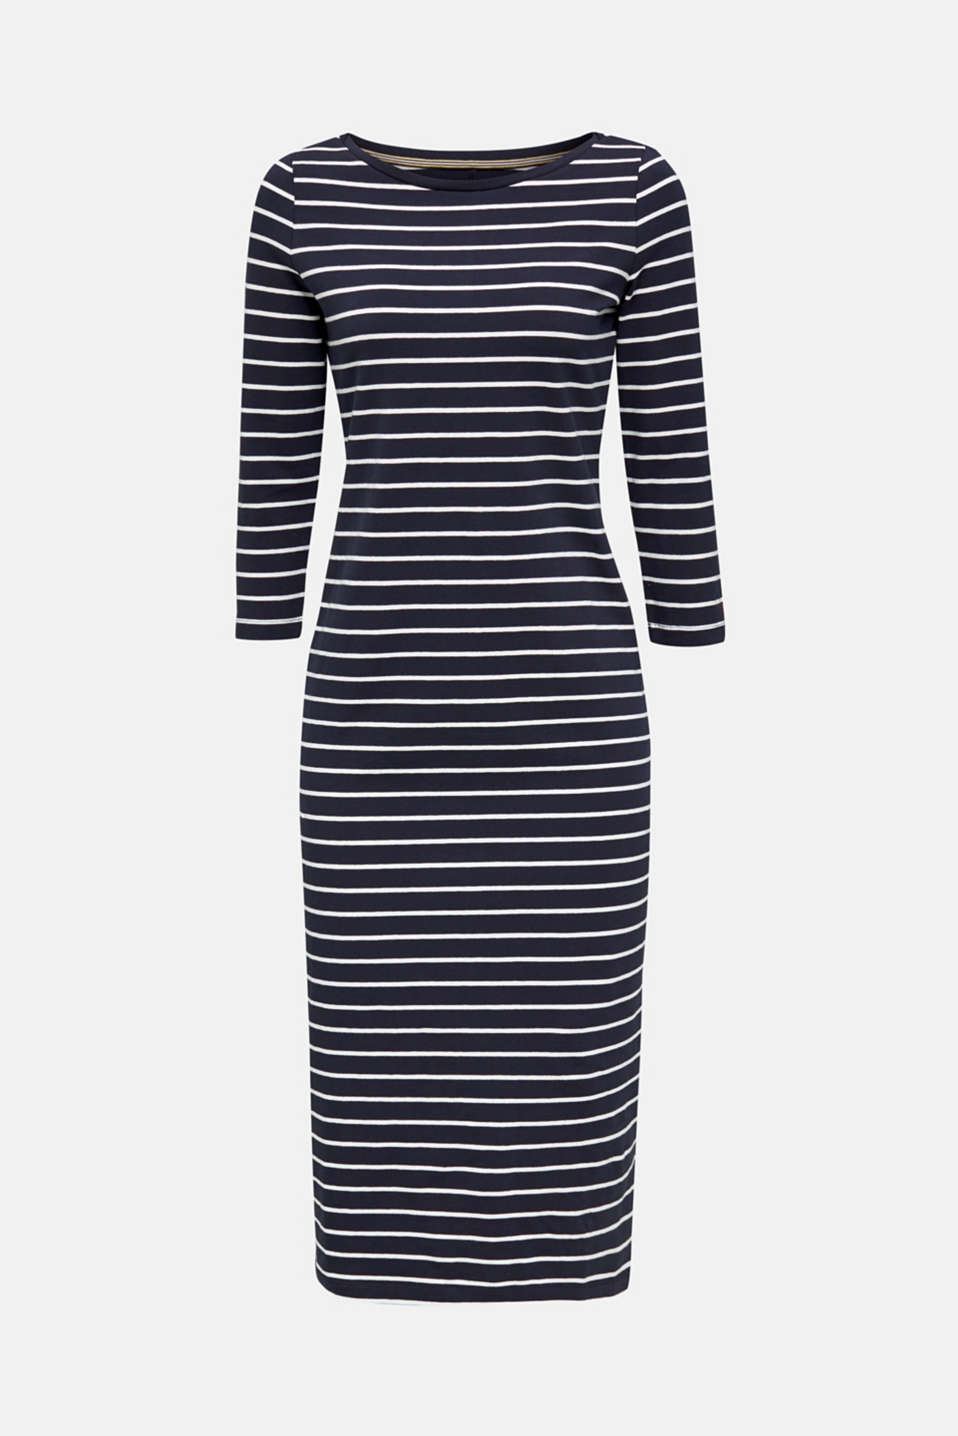 Midi dress in stretch jersey, NAVY, detail image number 5